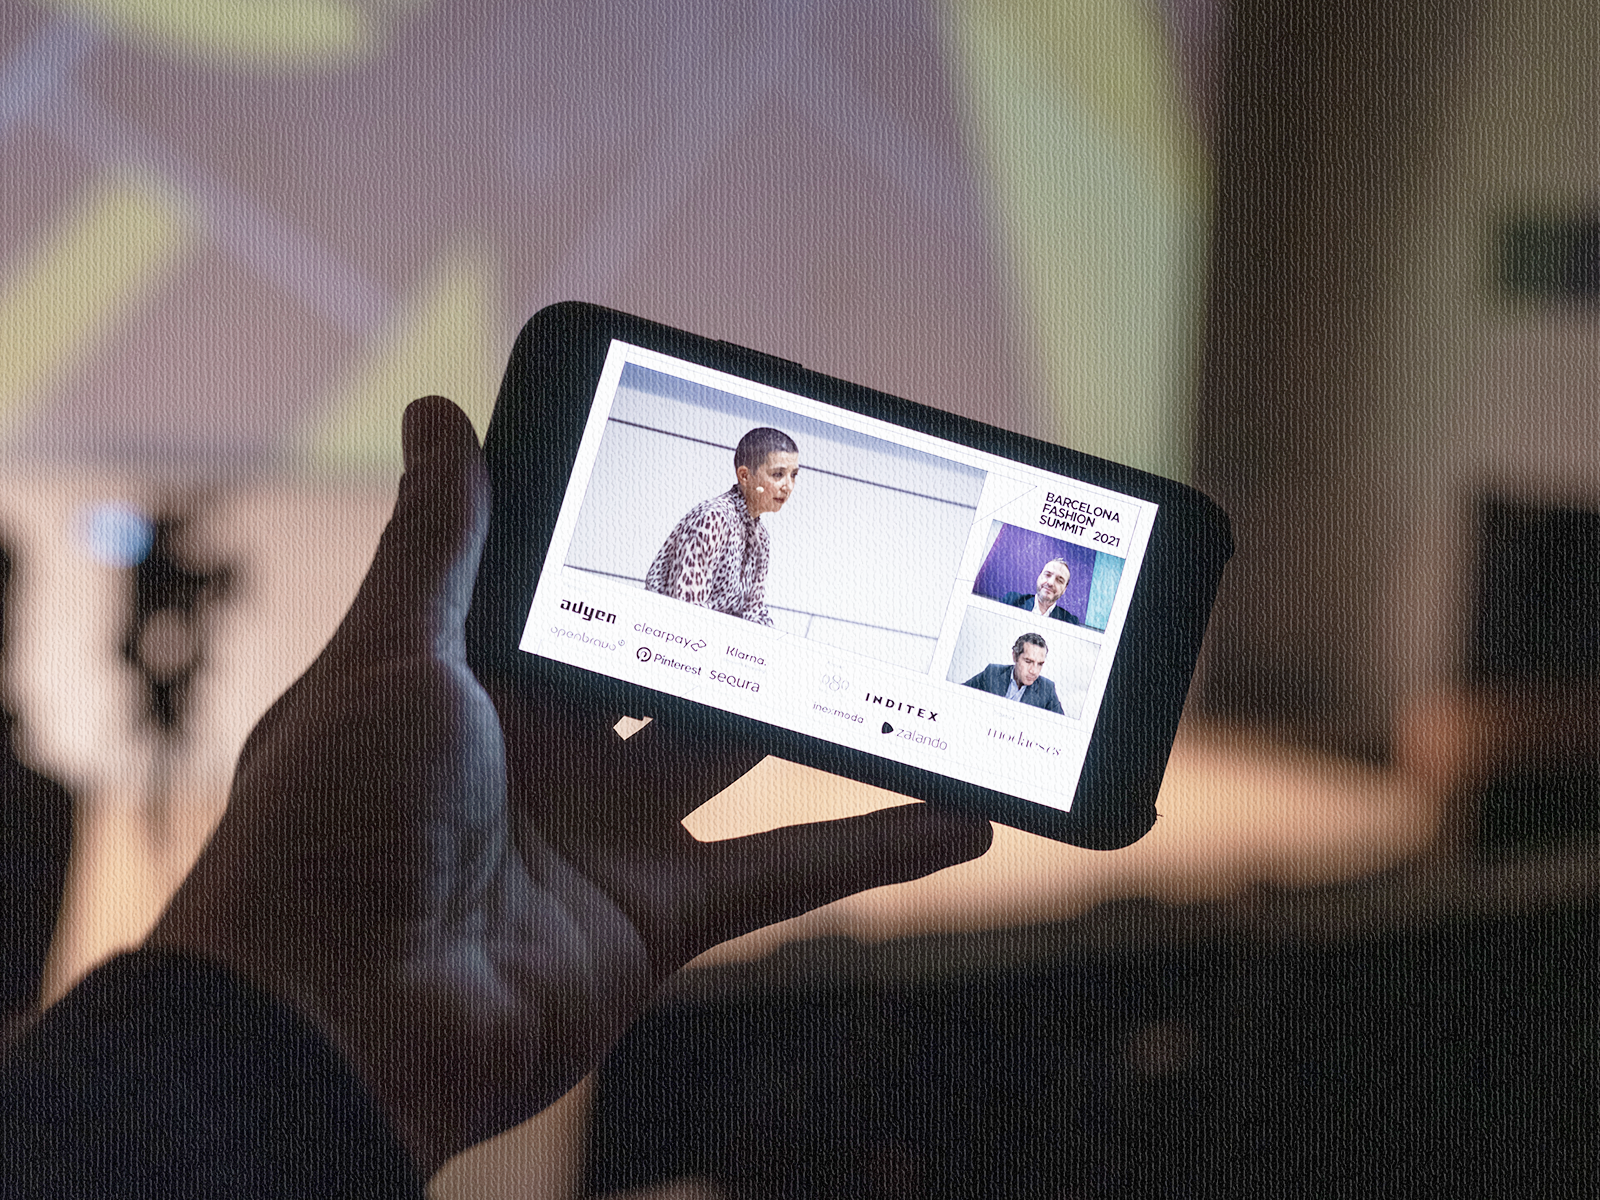 /bfs21/slideshows/10.png